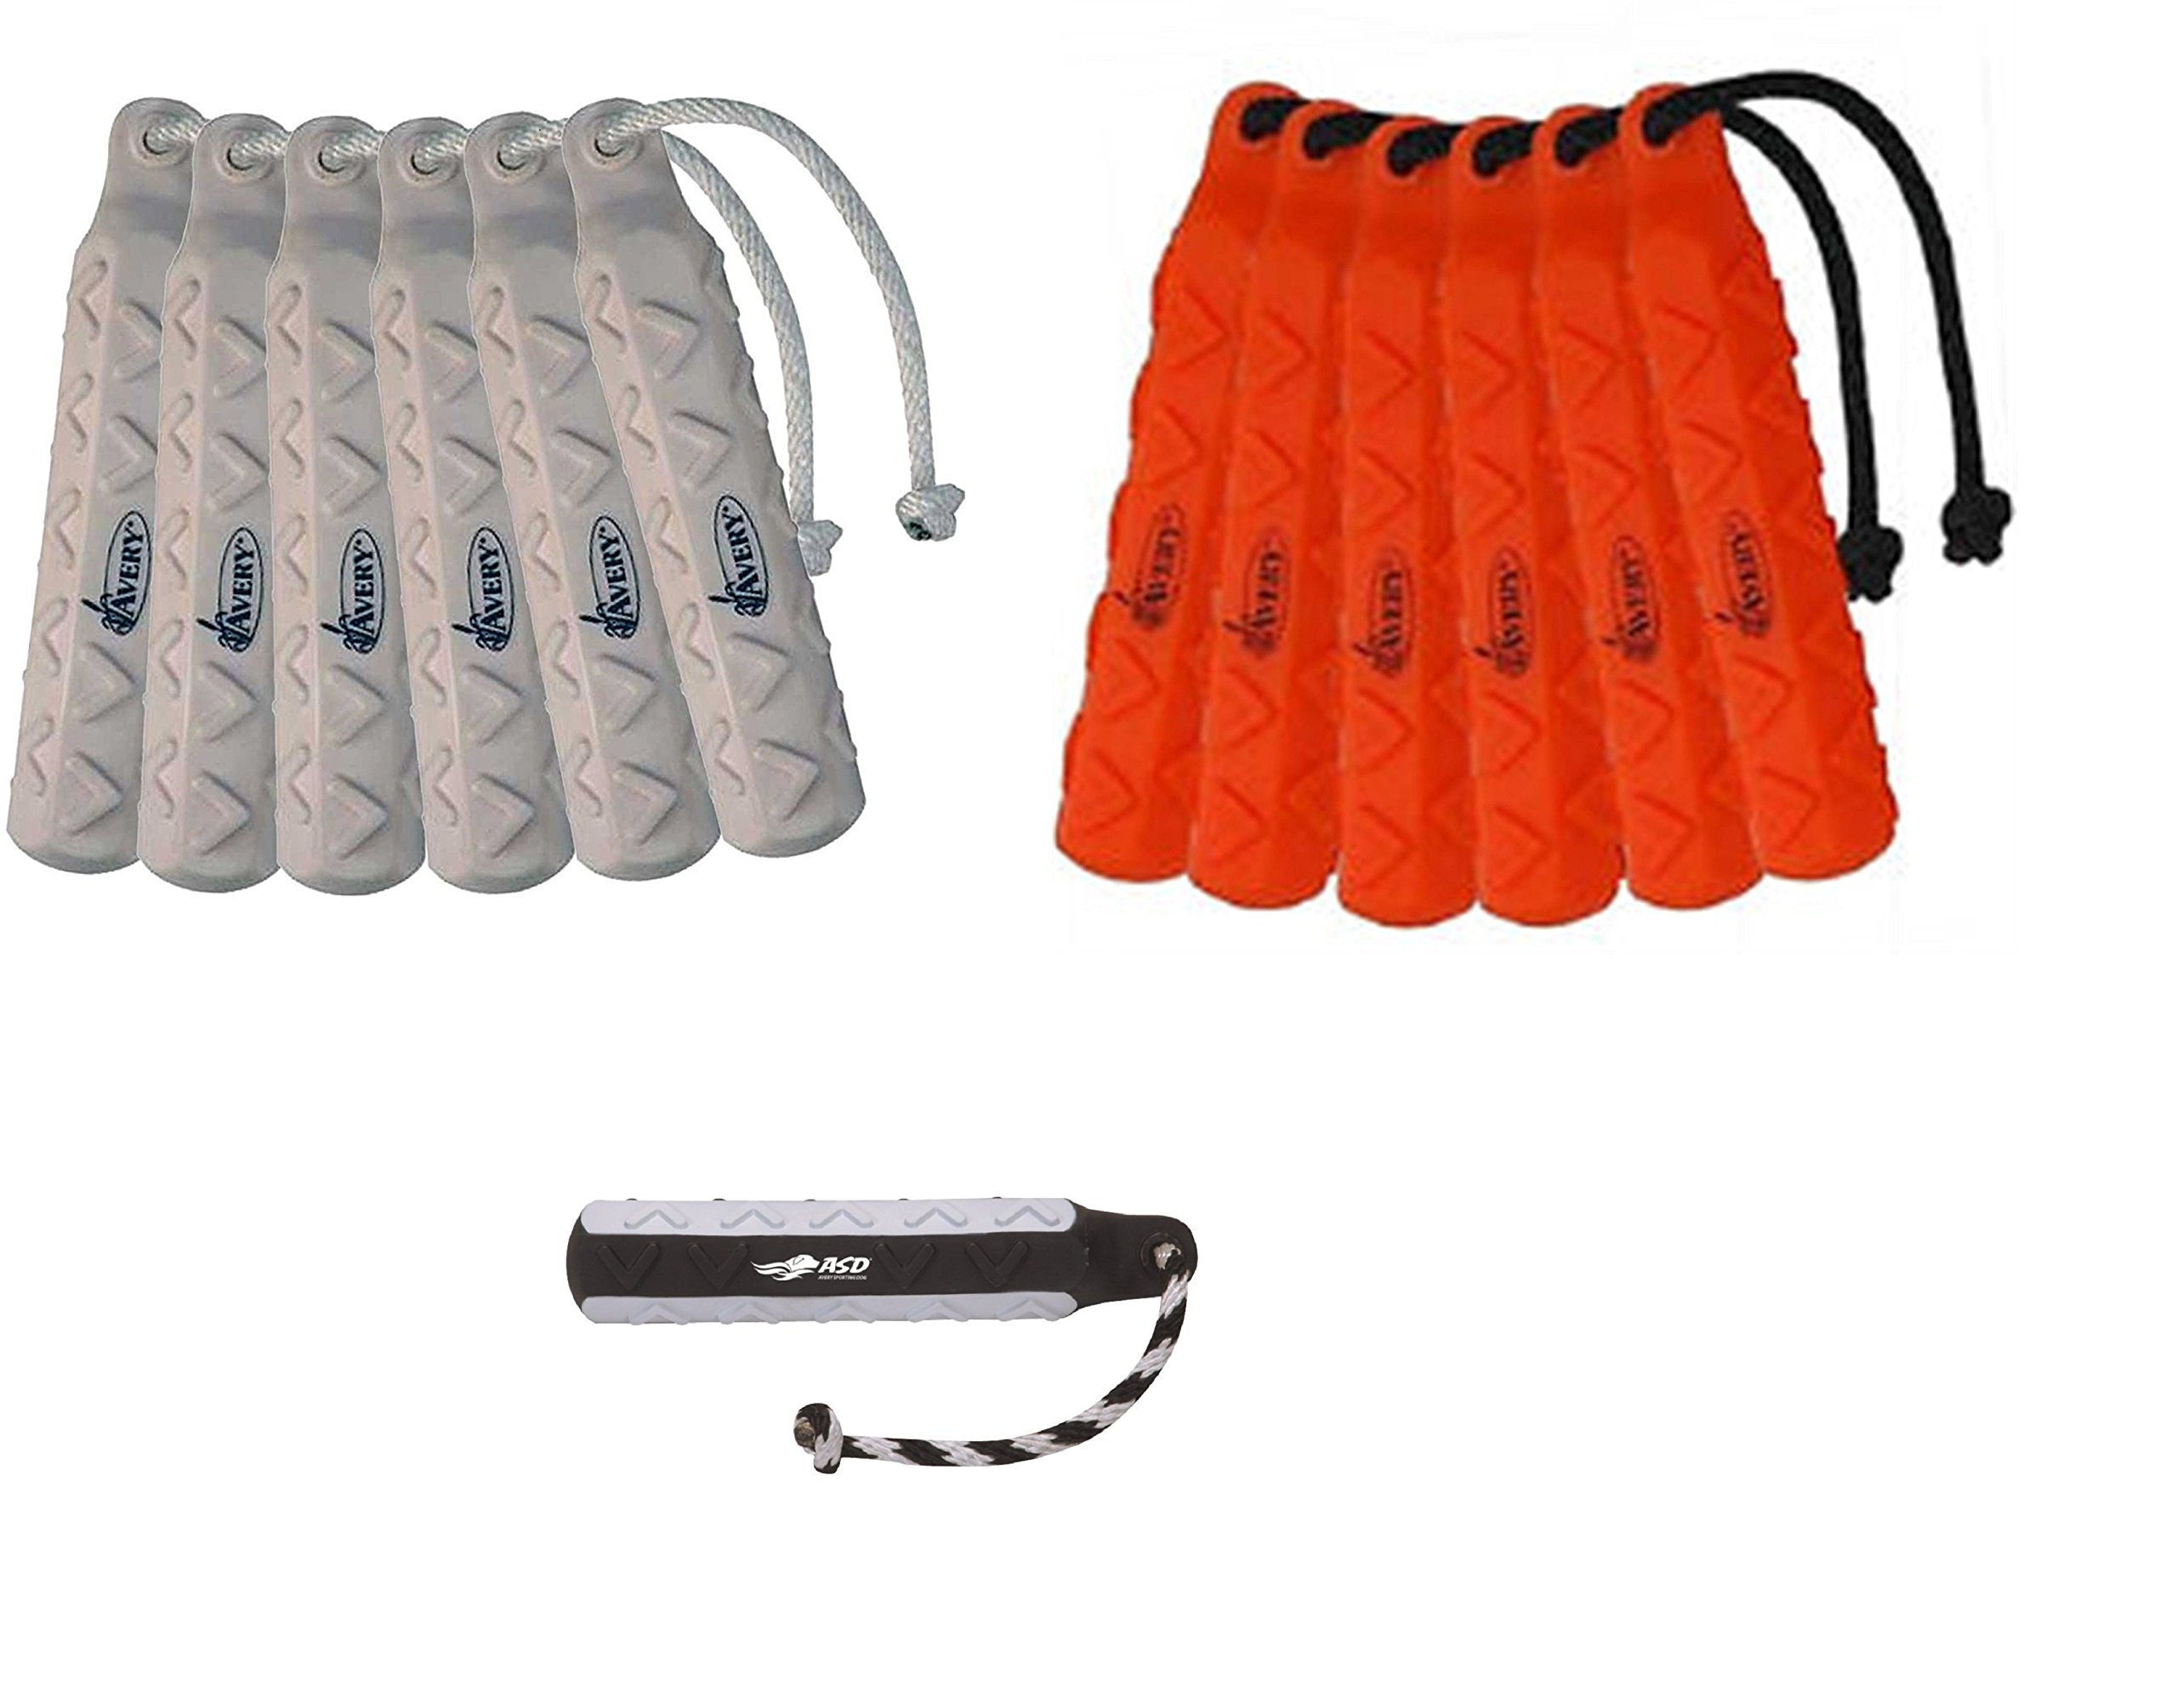 Avery Sporting Dog 2in HexaBumper Trainer Orange, White , Flasher Pack of 6 Each by Avery Outdoors Inc (Image #1)